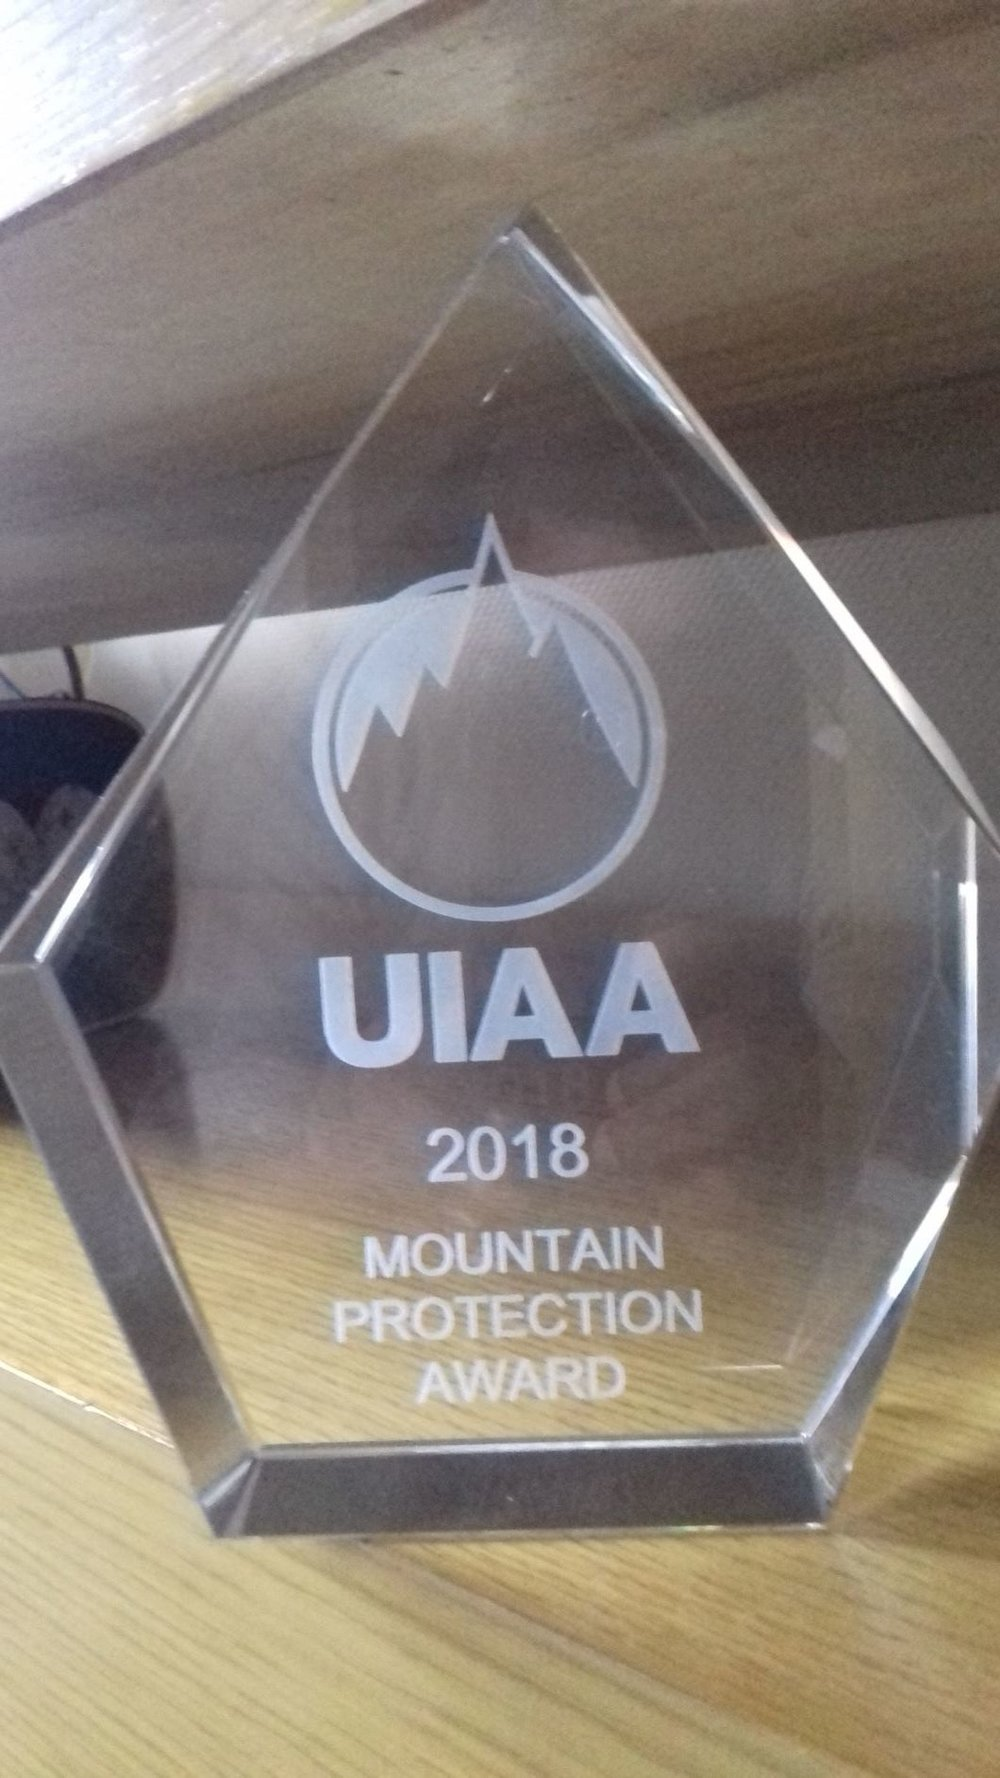 The UIAA 2018 Mountain Protection Award